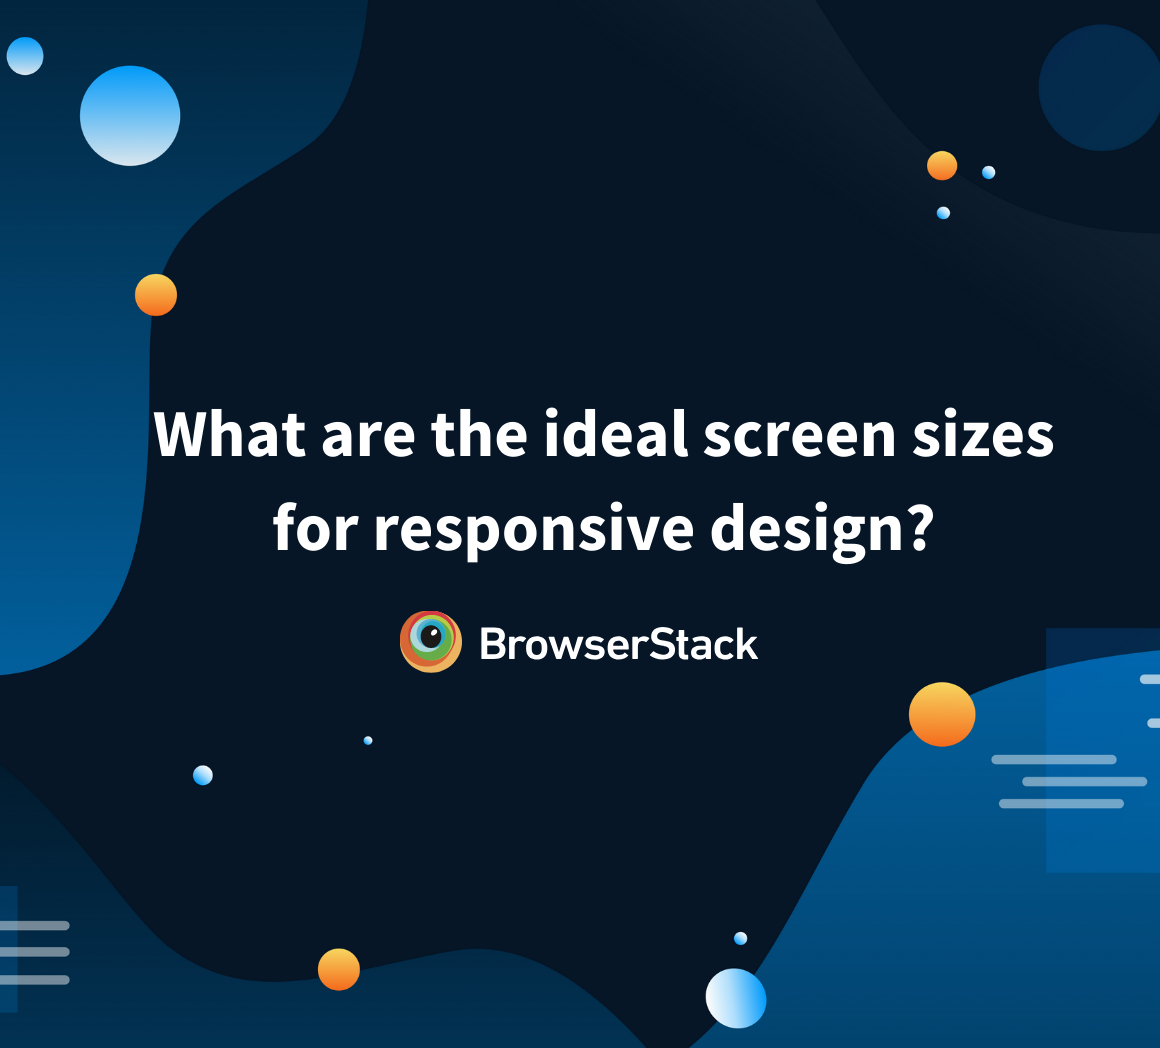 What is the ideal screen size for responsive design?